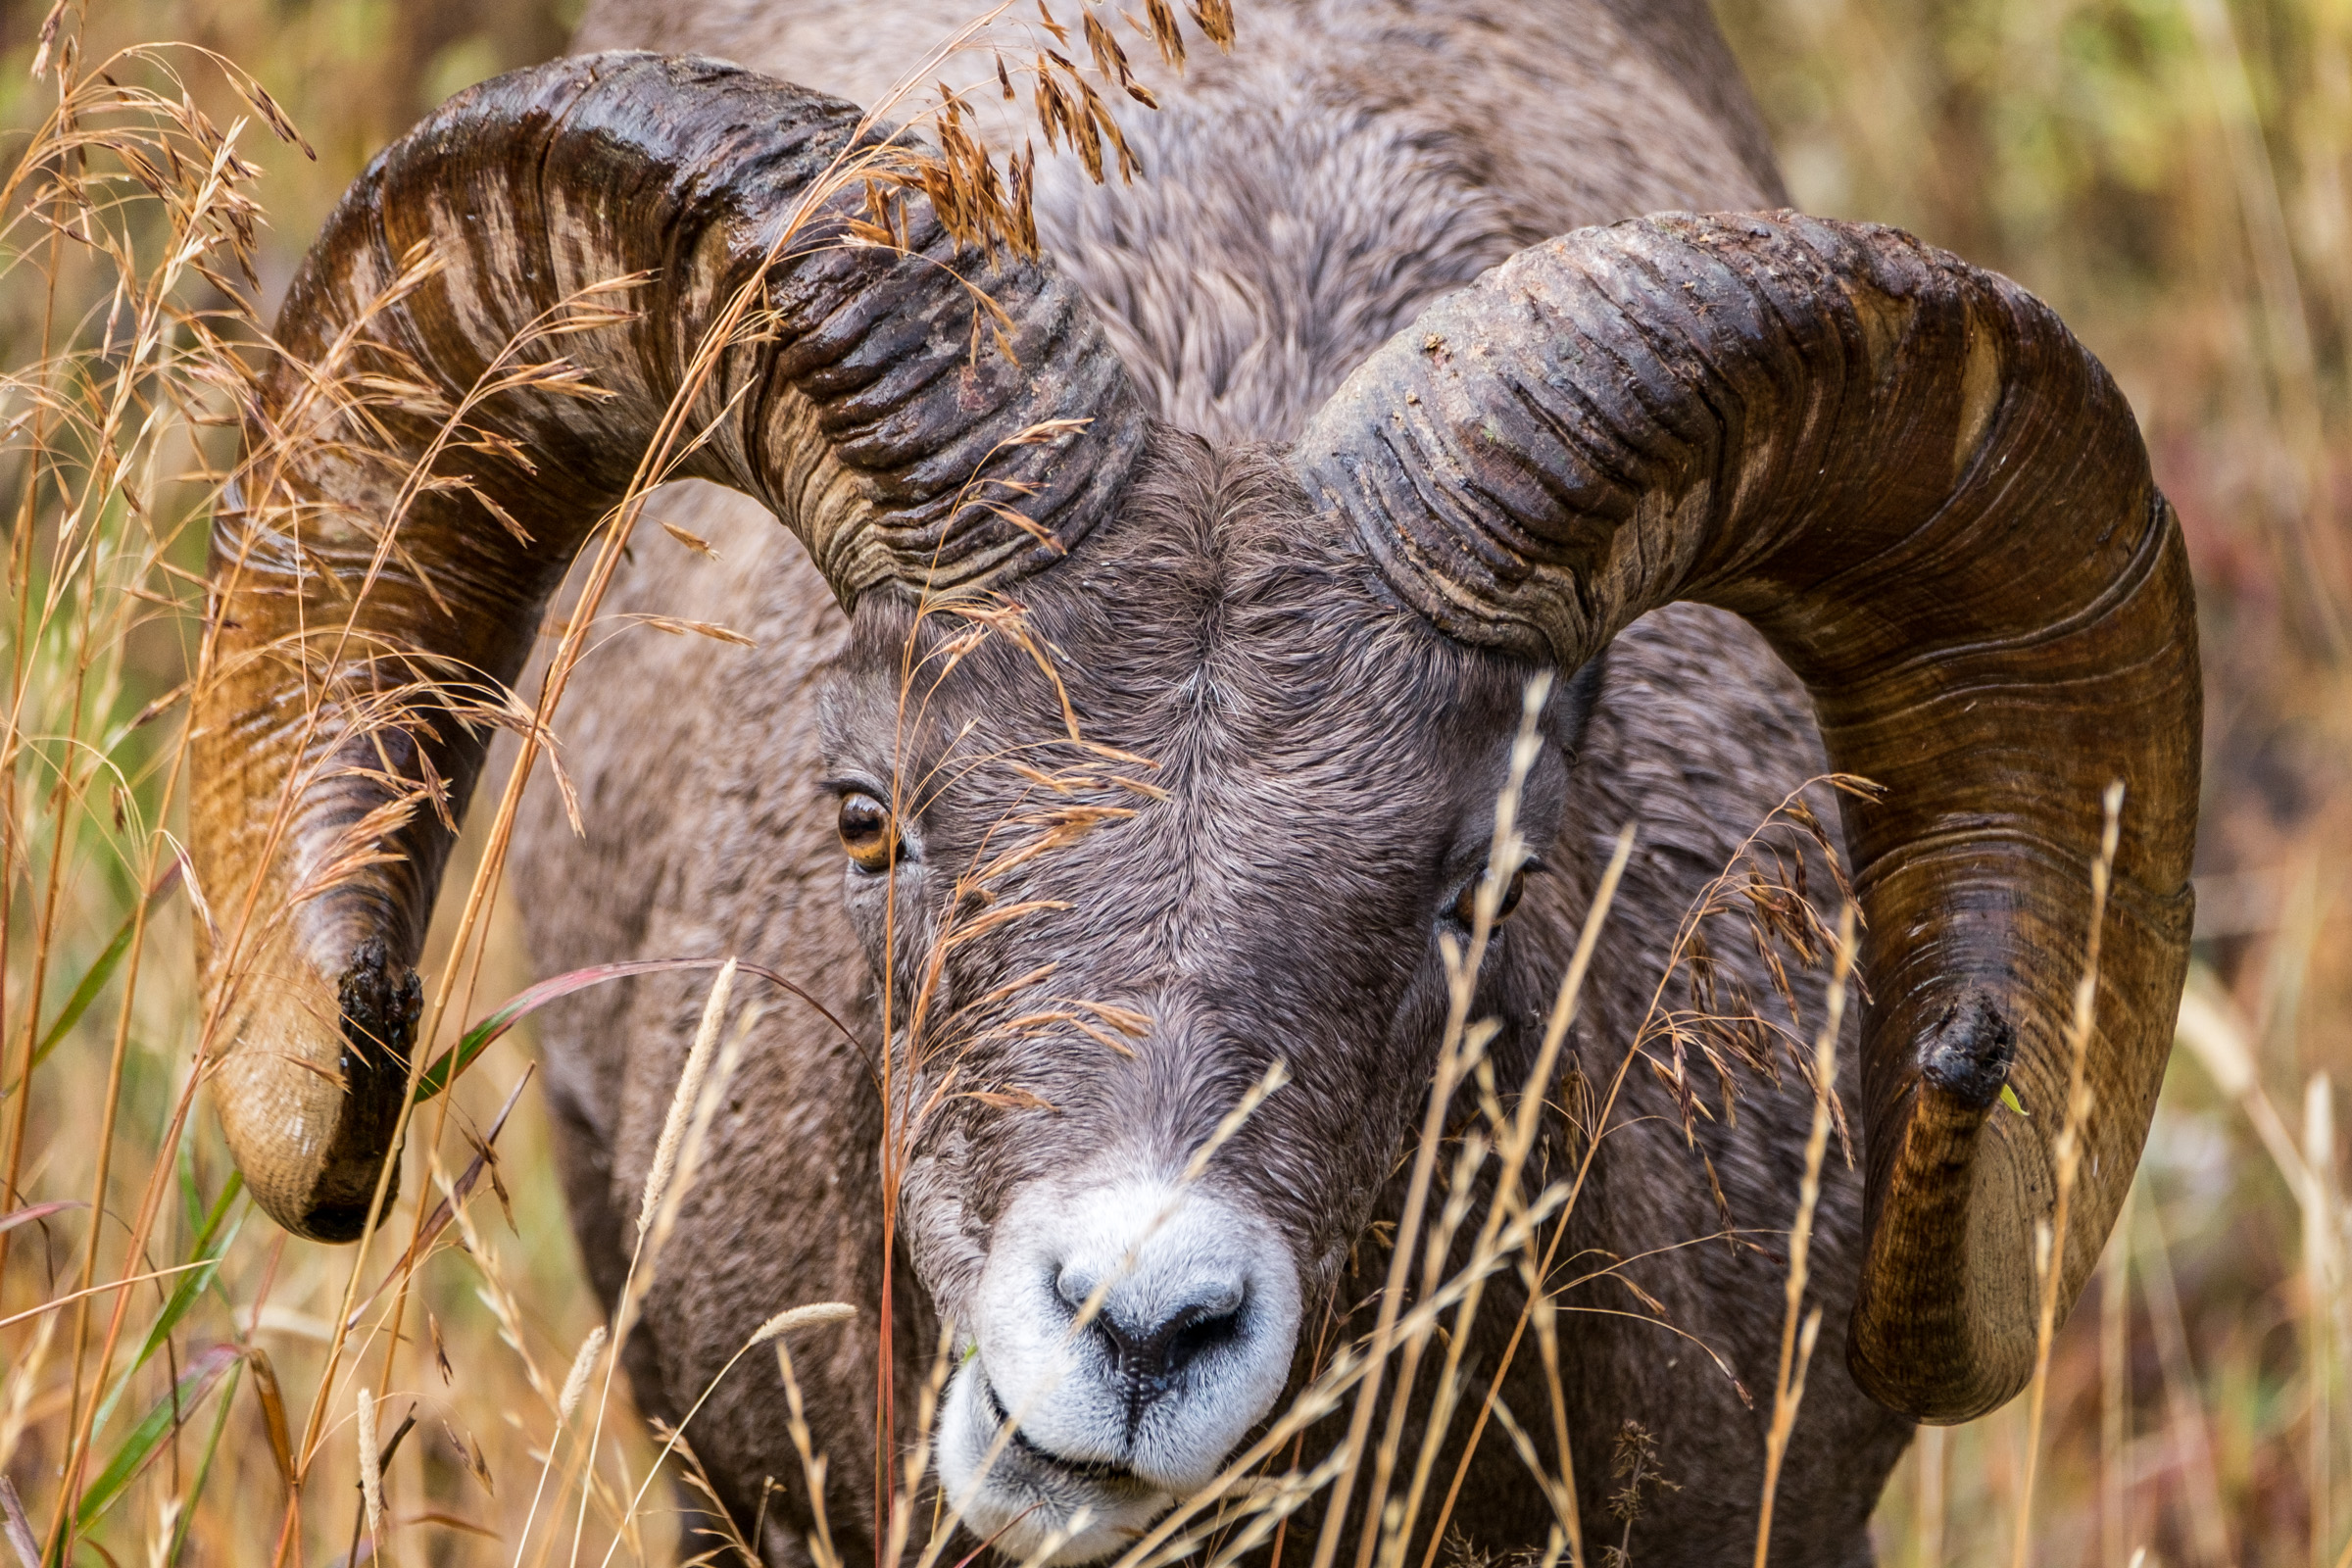 A Big Horn Sheep staring down the camera as it grazes.